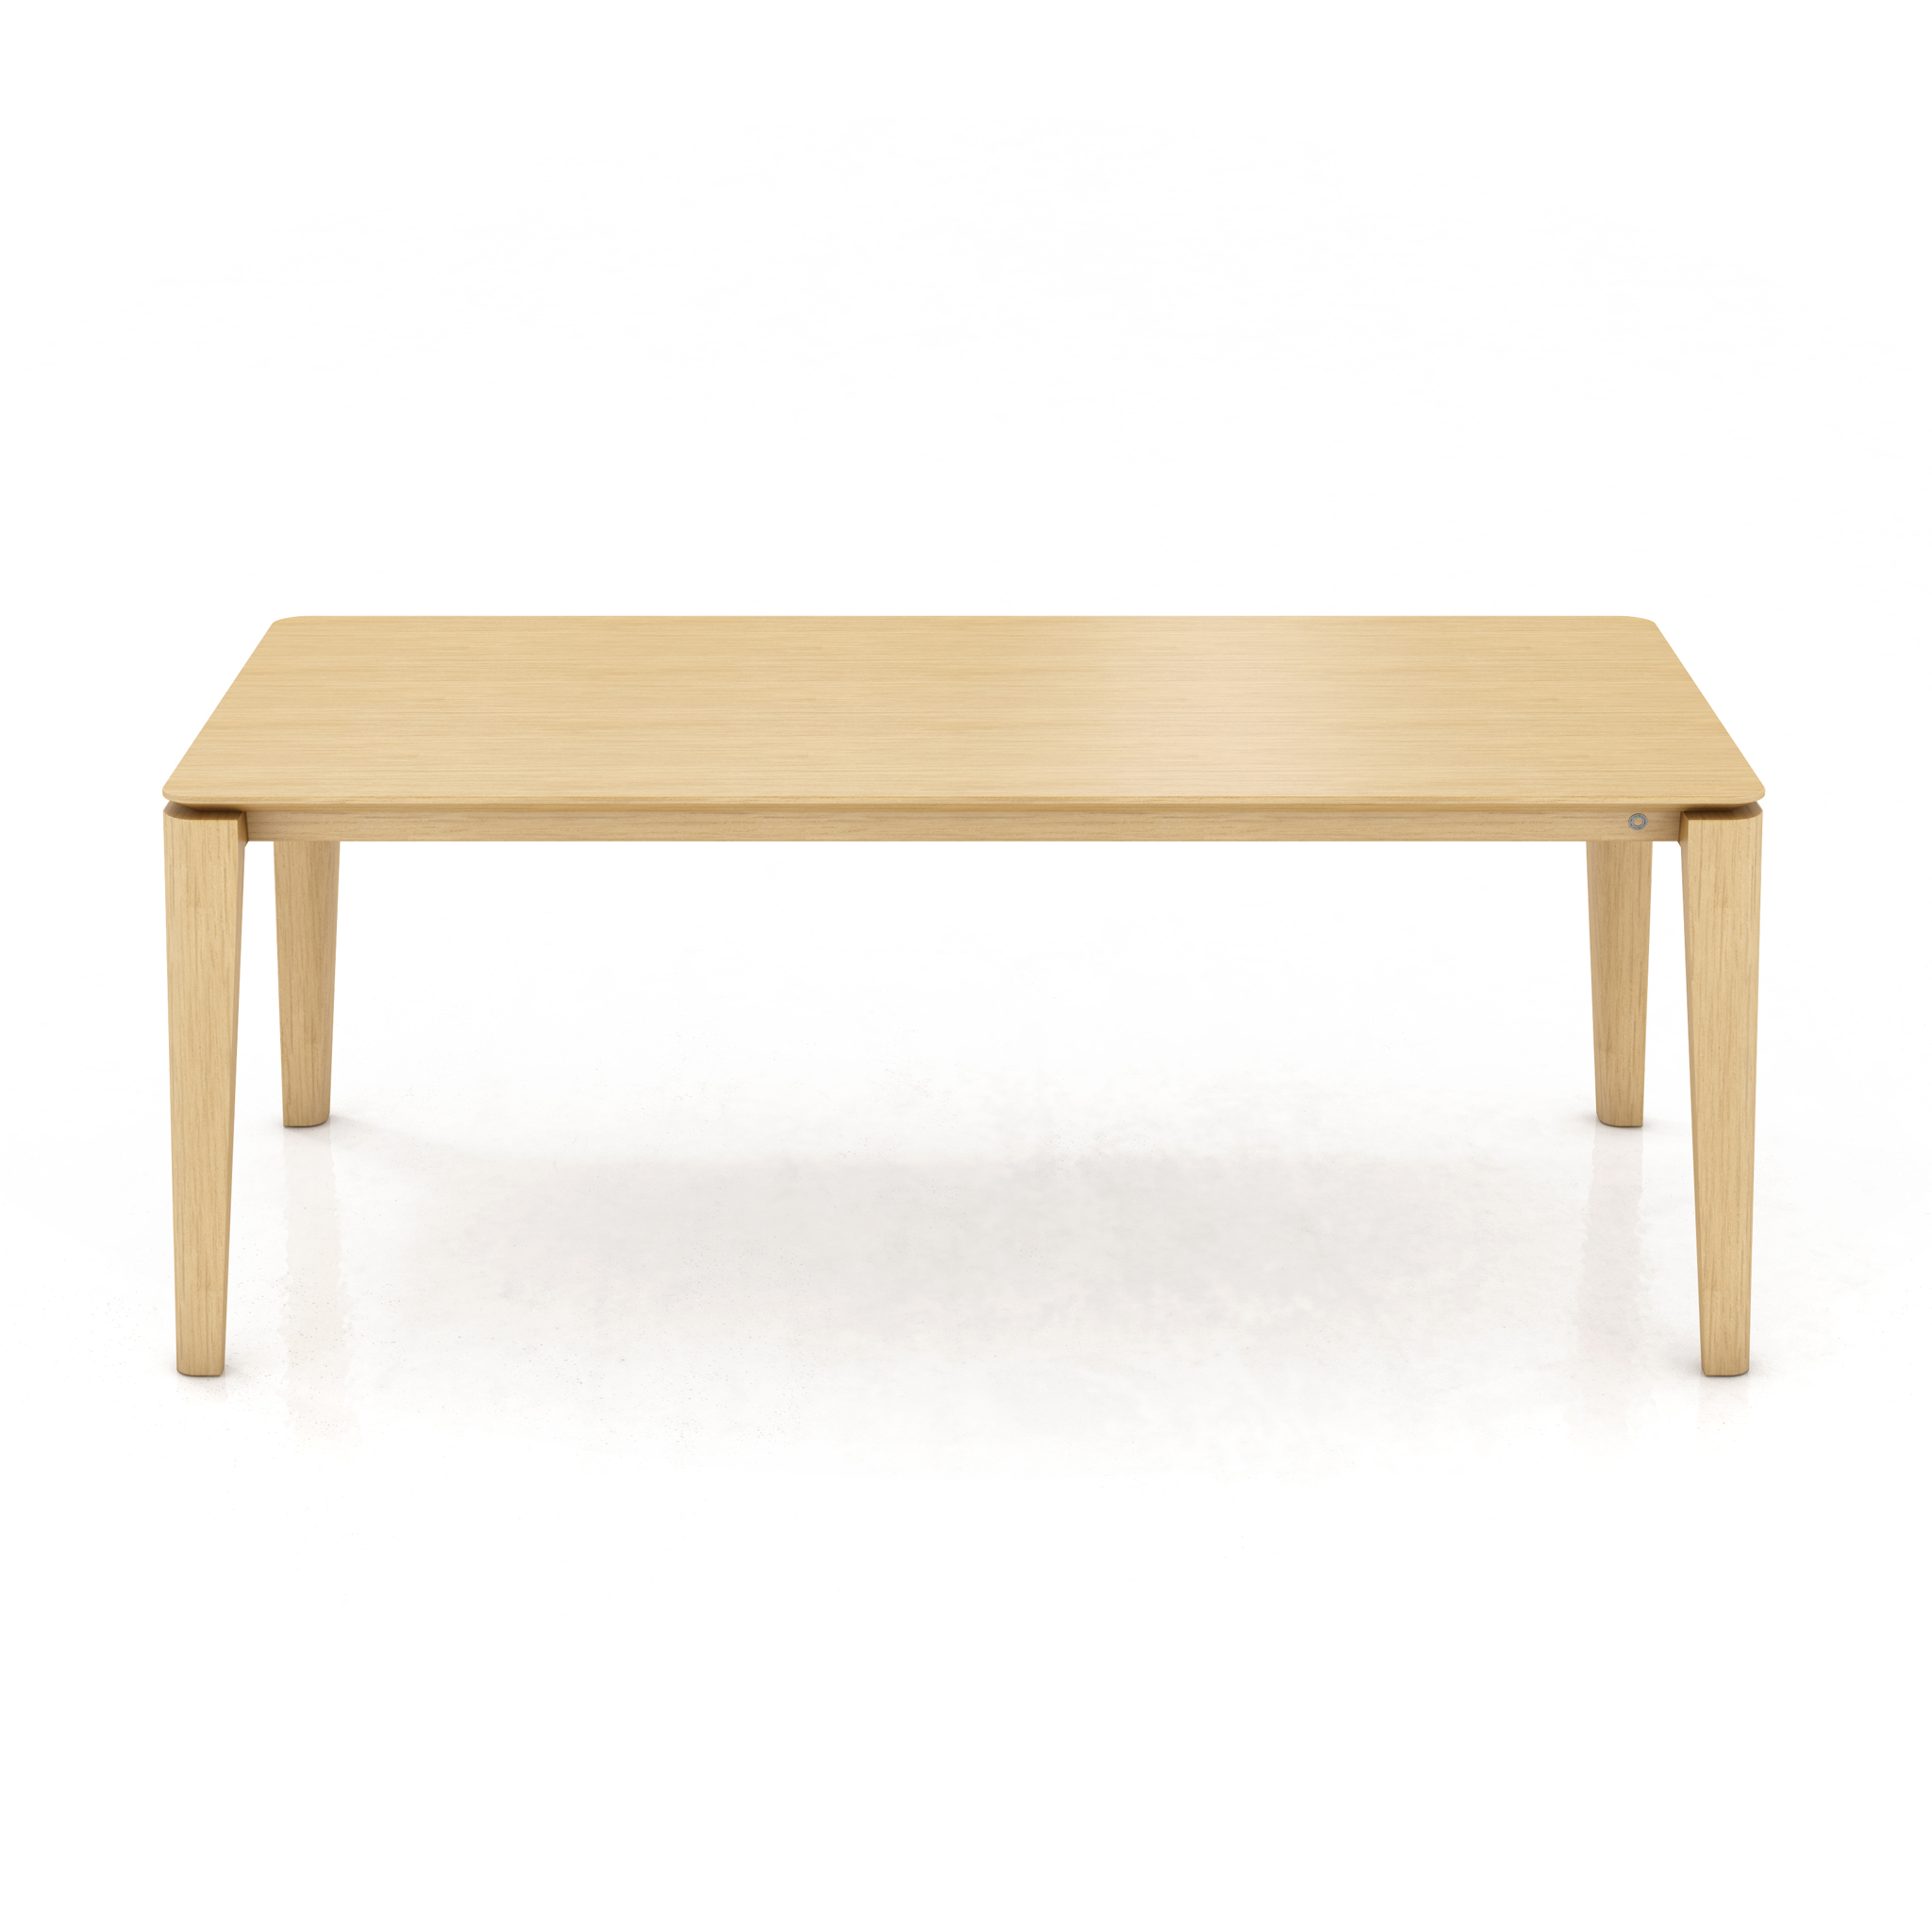 STANFORD FIXED DINING TABLE 180cm-0